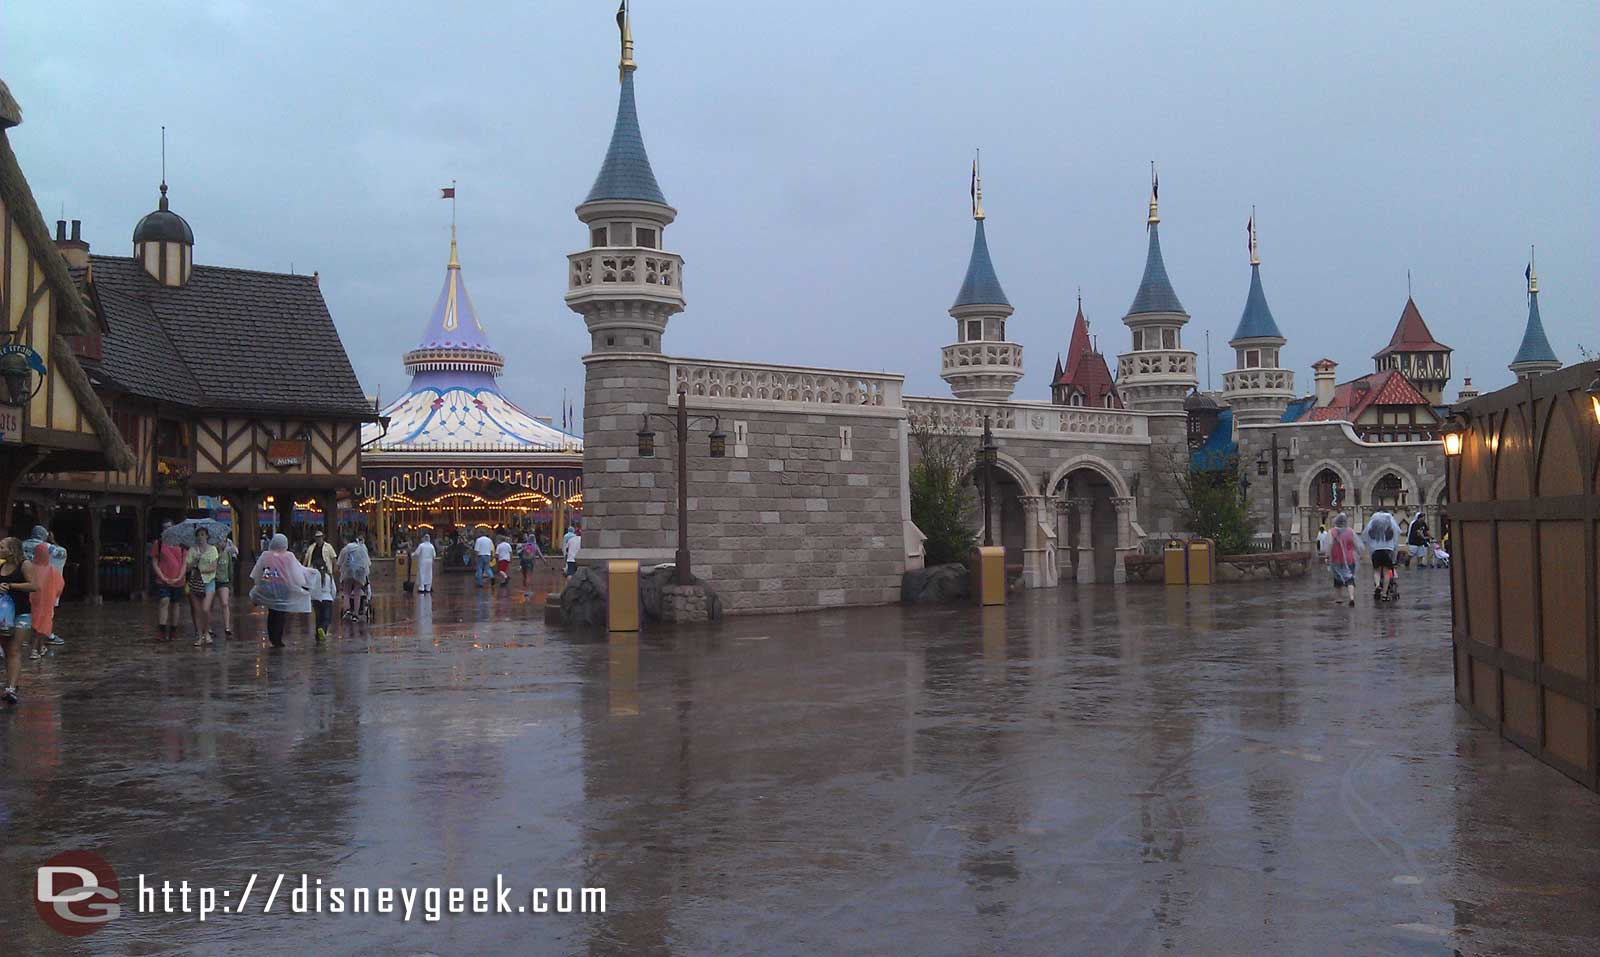 Venturing out since the rain seems a steady, light drzzle.  Walking through Fantasyland